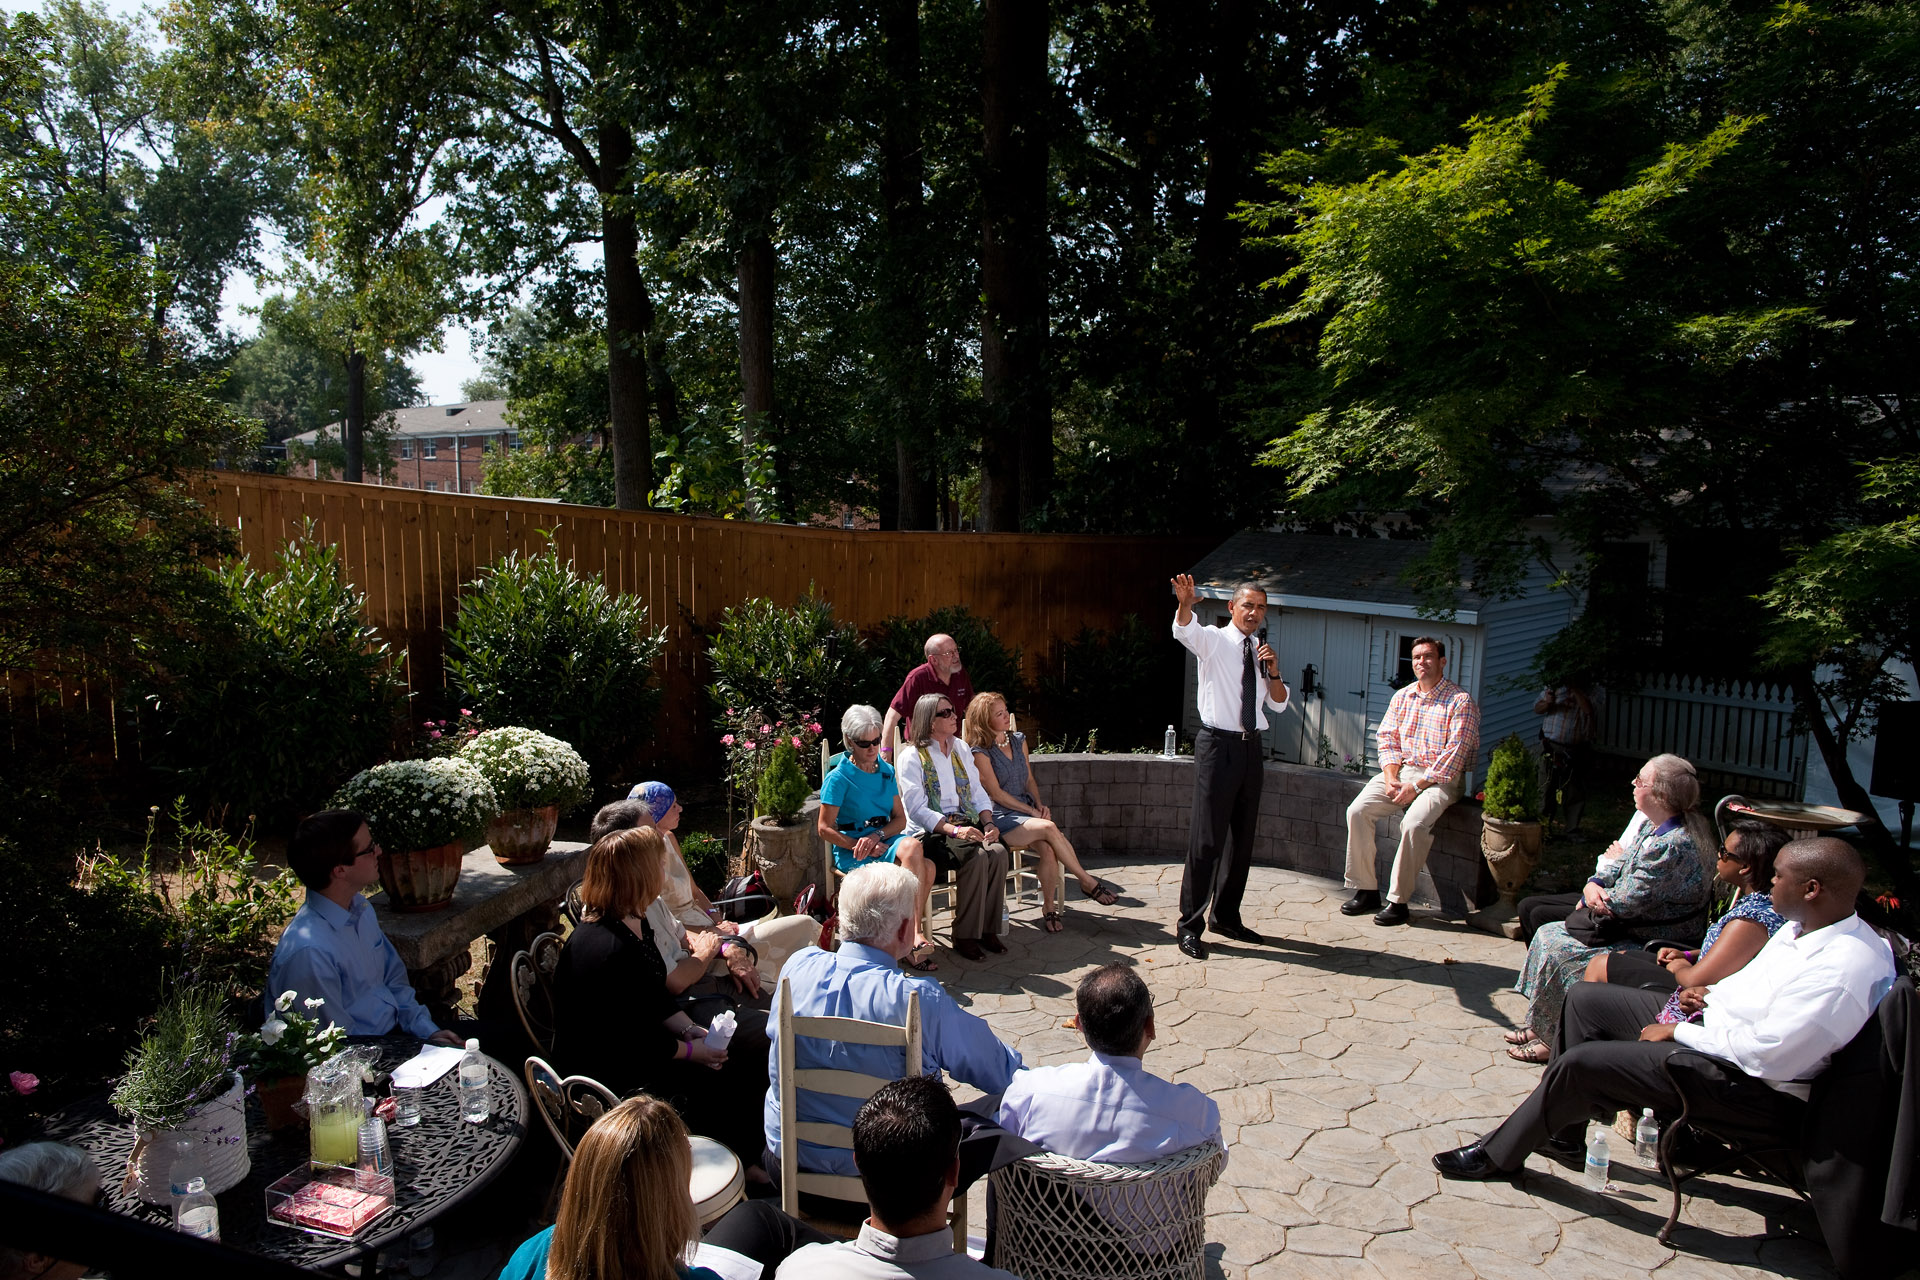 President Barack Obama delivers remarks on health care reform at the Brayshaw residence in Falls Church, Va.